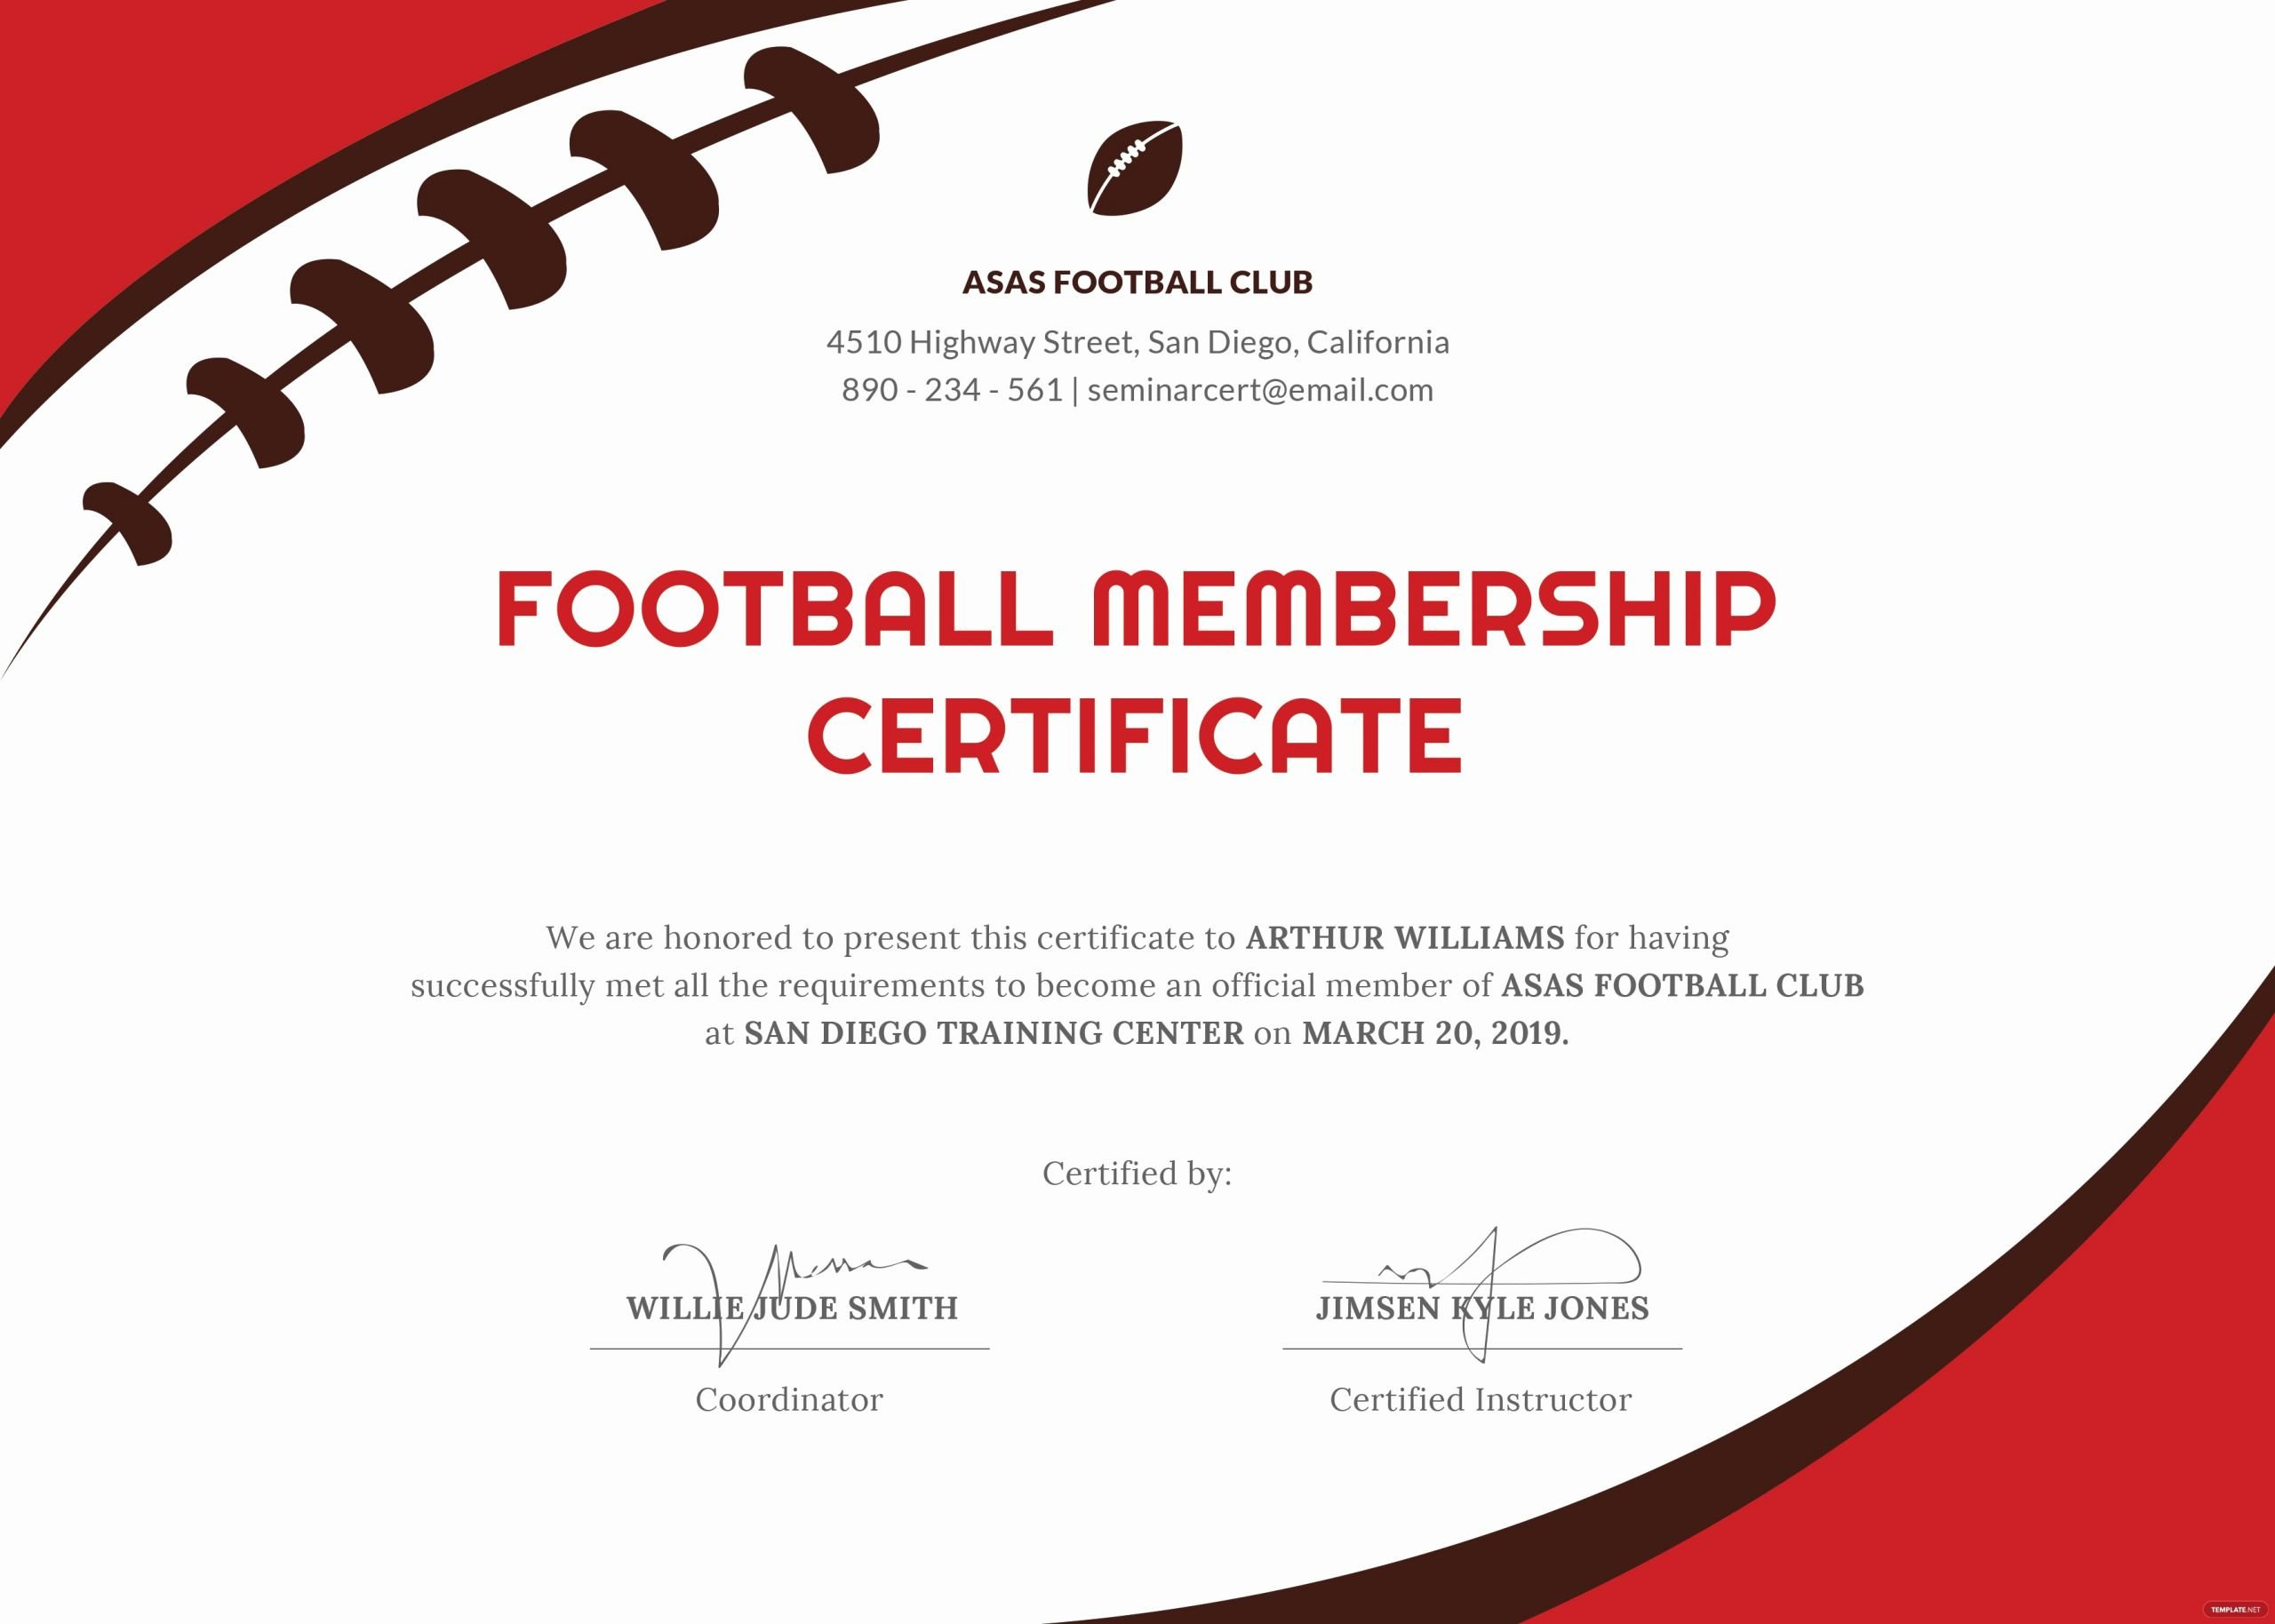 Soccer Certificates Microsoft Word Inspirational Free Football Certificate Template In Psd Ms Word